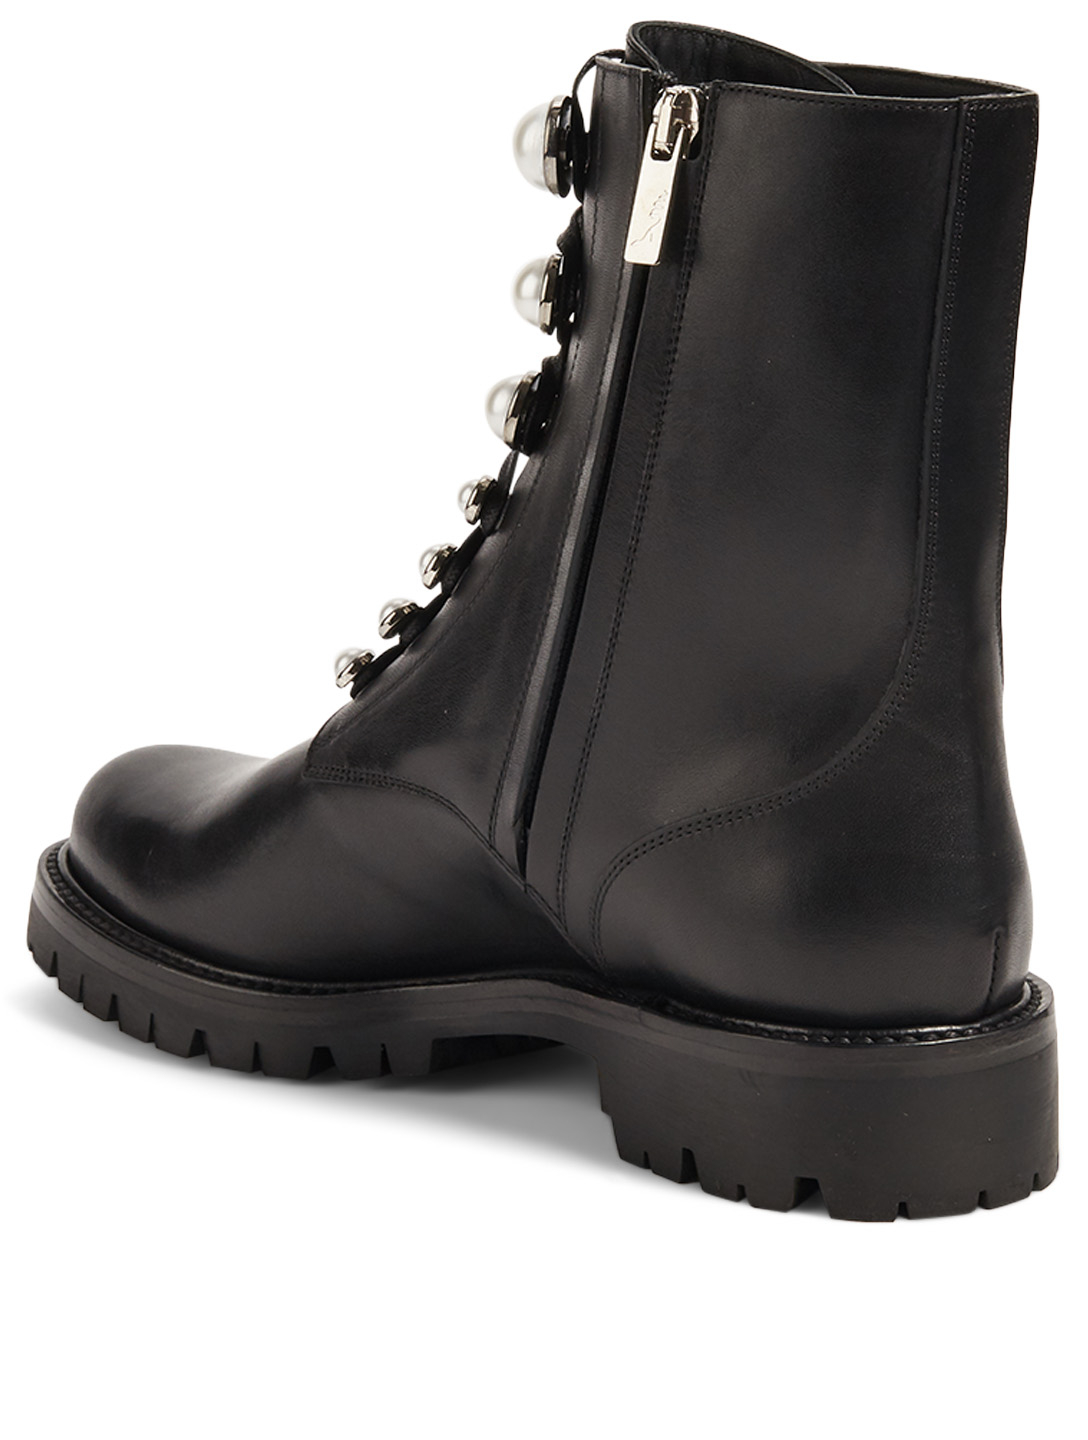 RENE CAOVILLA Perlarita Leather Combat Boots Women's Black